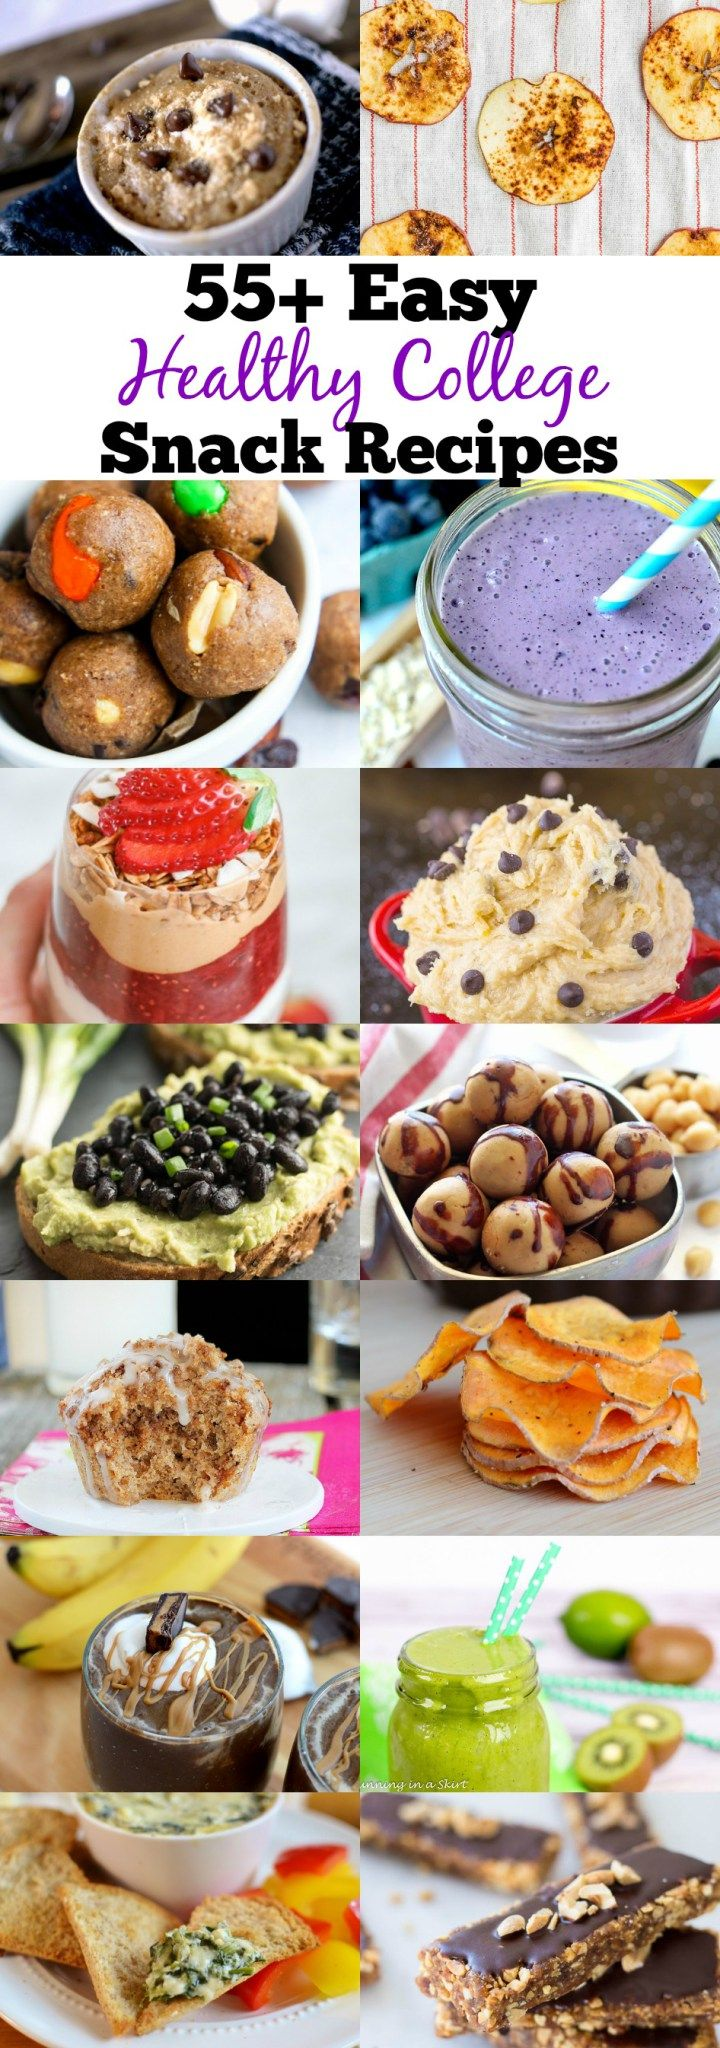 we created a list of over 55 Healthy College Snack Recipes that can be made in a Dorm Room! This list is also great for people who have dietary restrictions such as GF, DF, Paleo and Vegan!